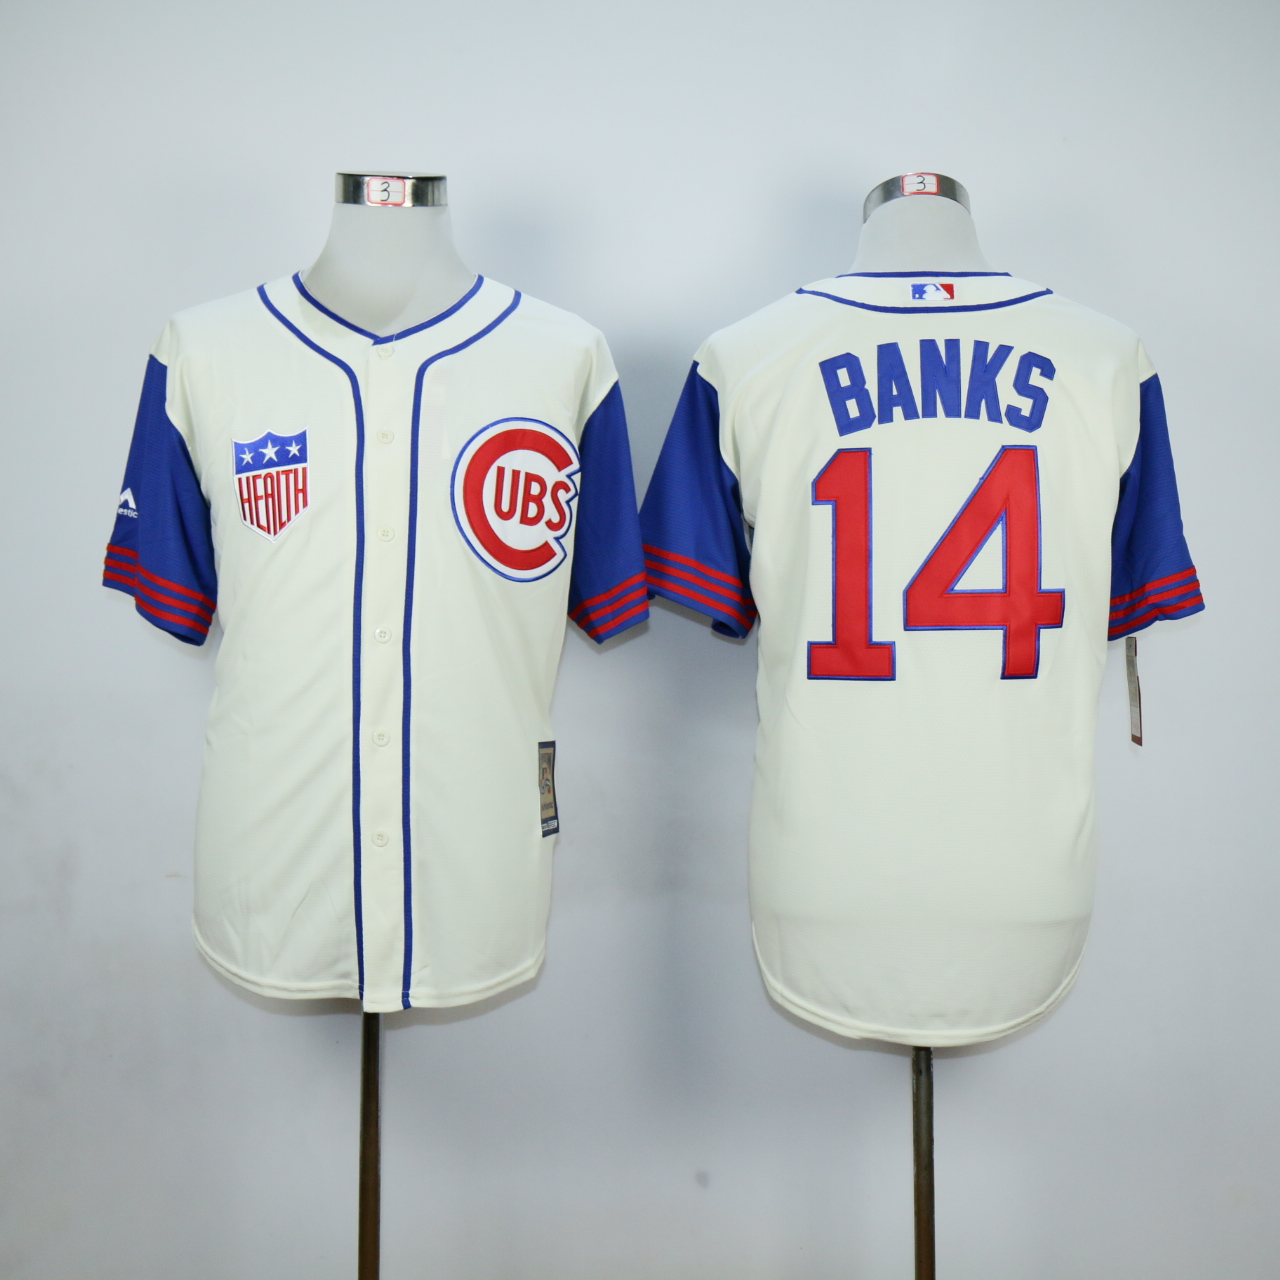 MLB Chicago Cubs 14 Banks White Jerseys